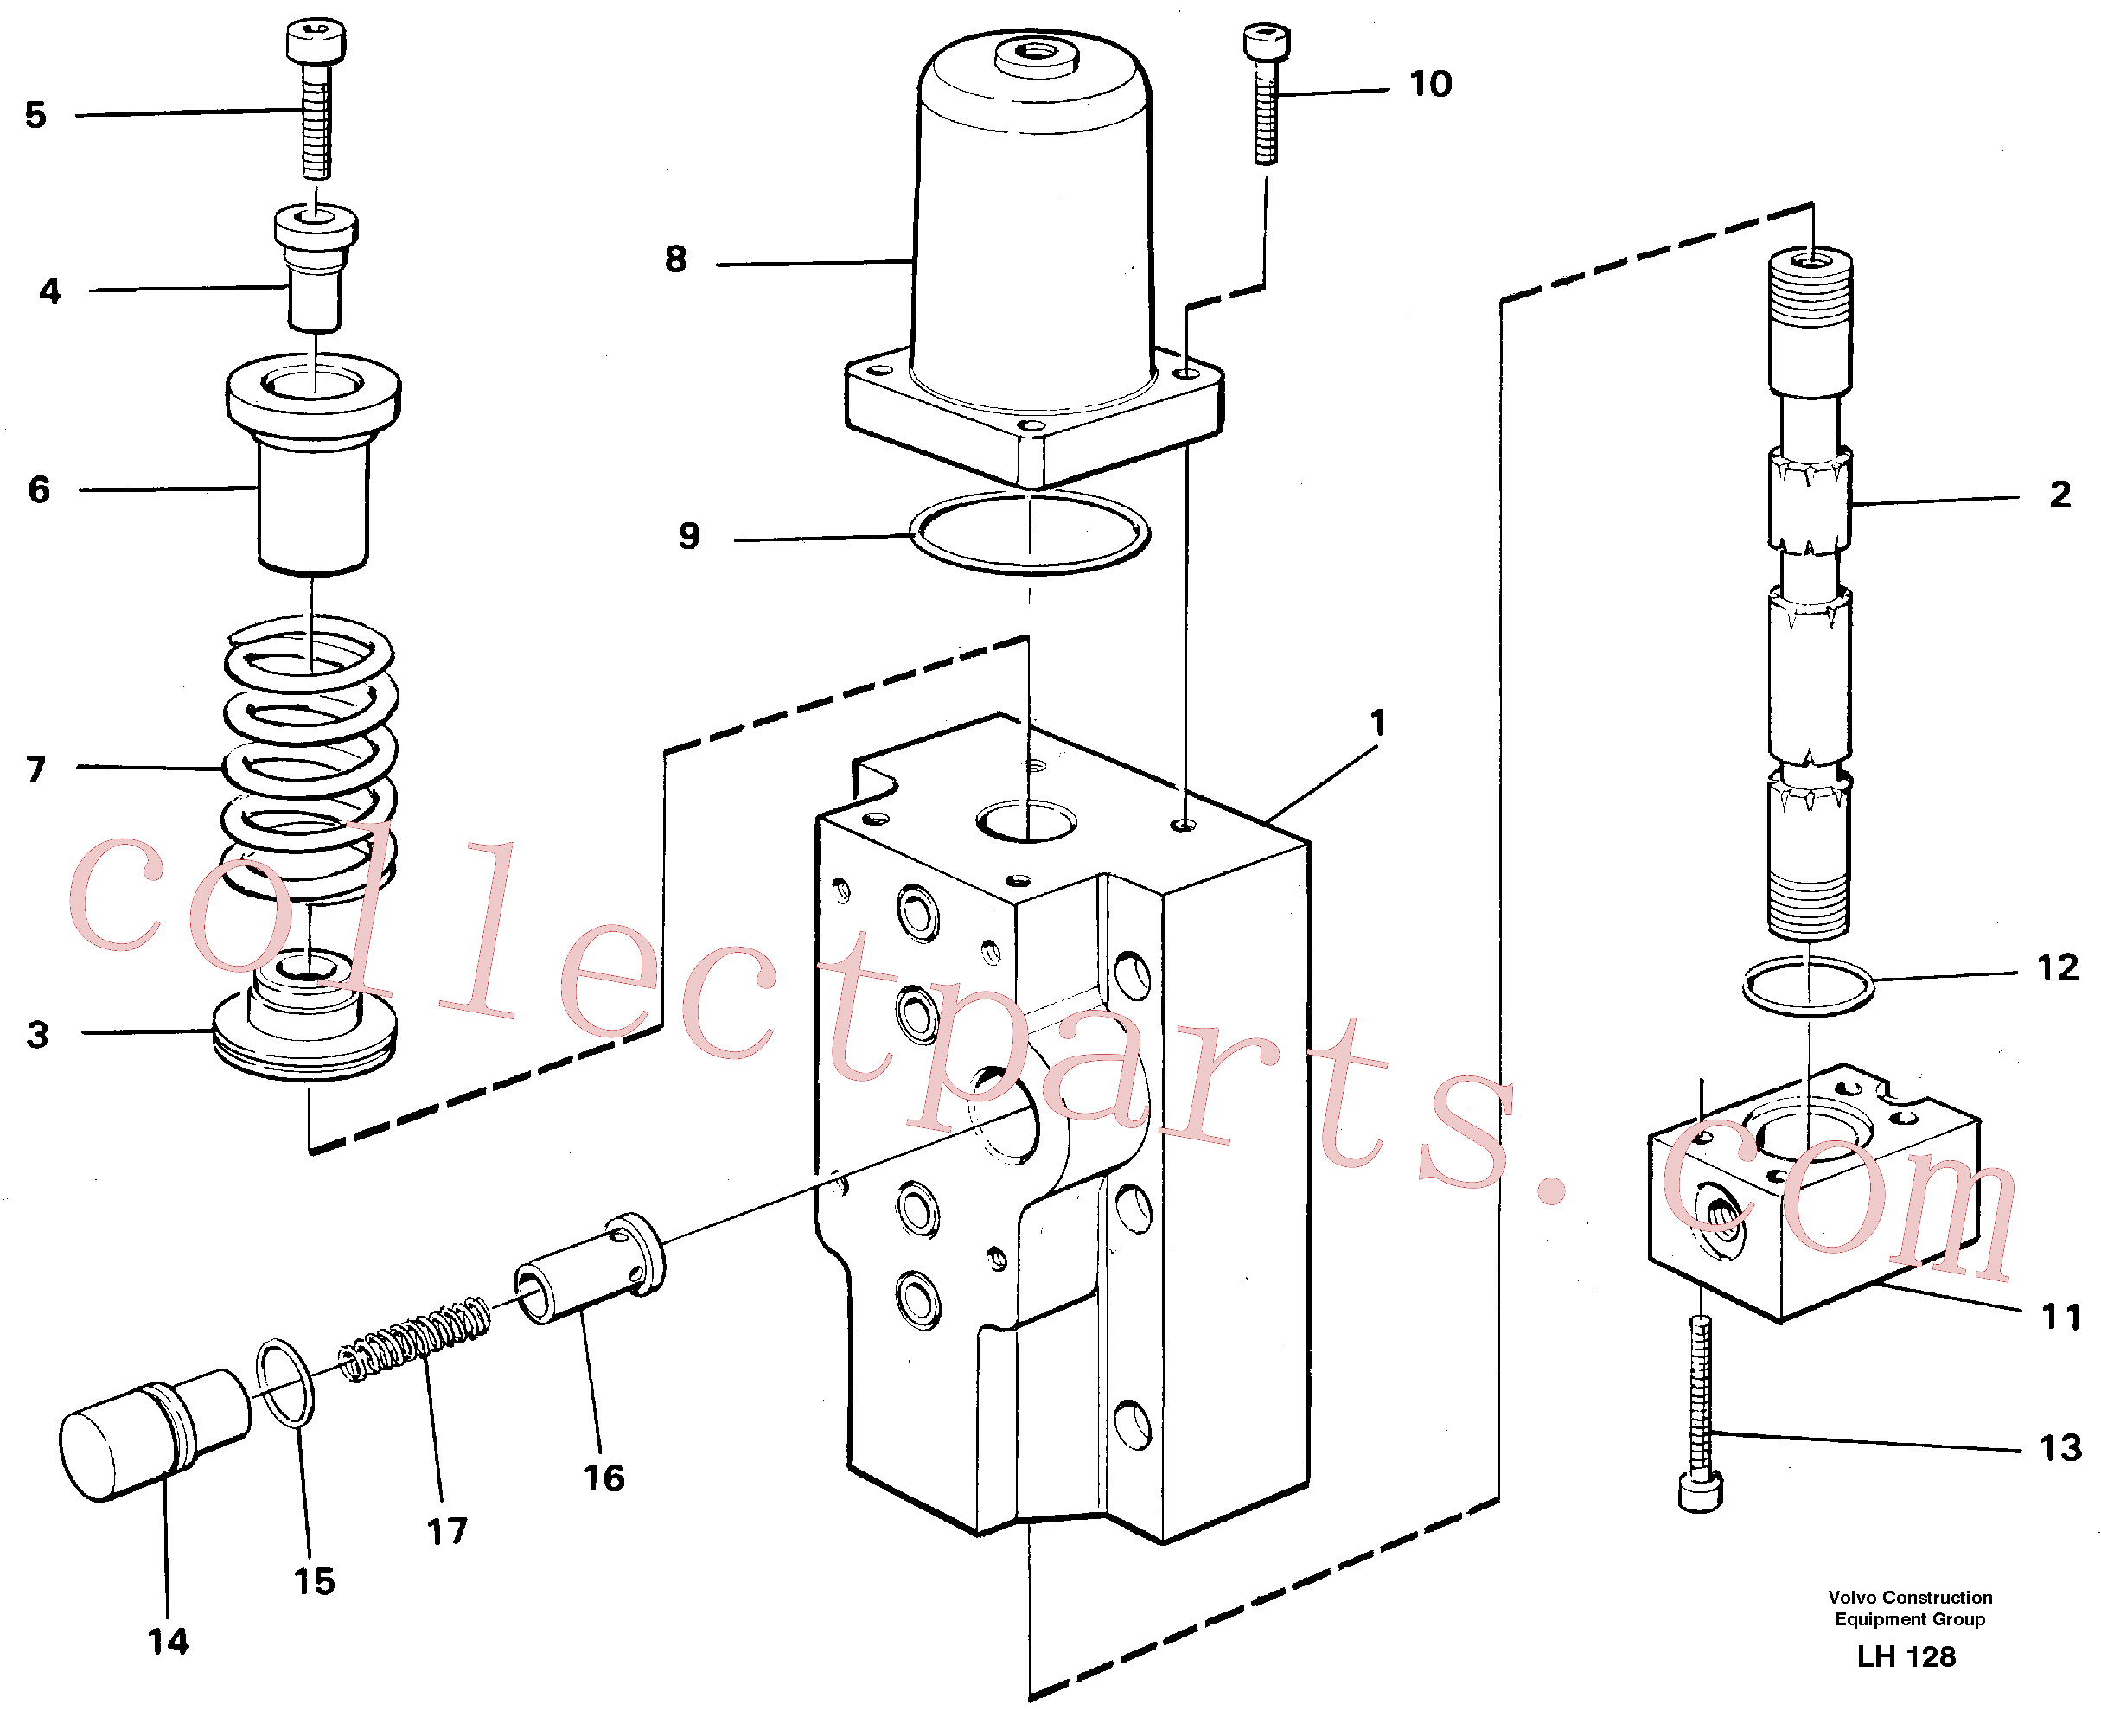 VOE14261819 for Volvo Four-way valves Primary(LH128 assembly)